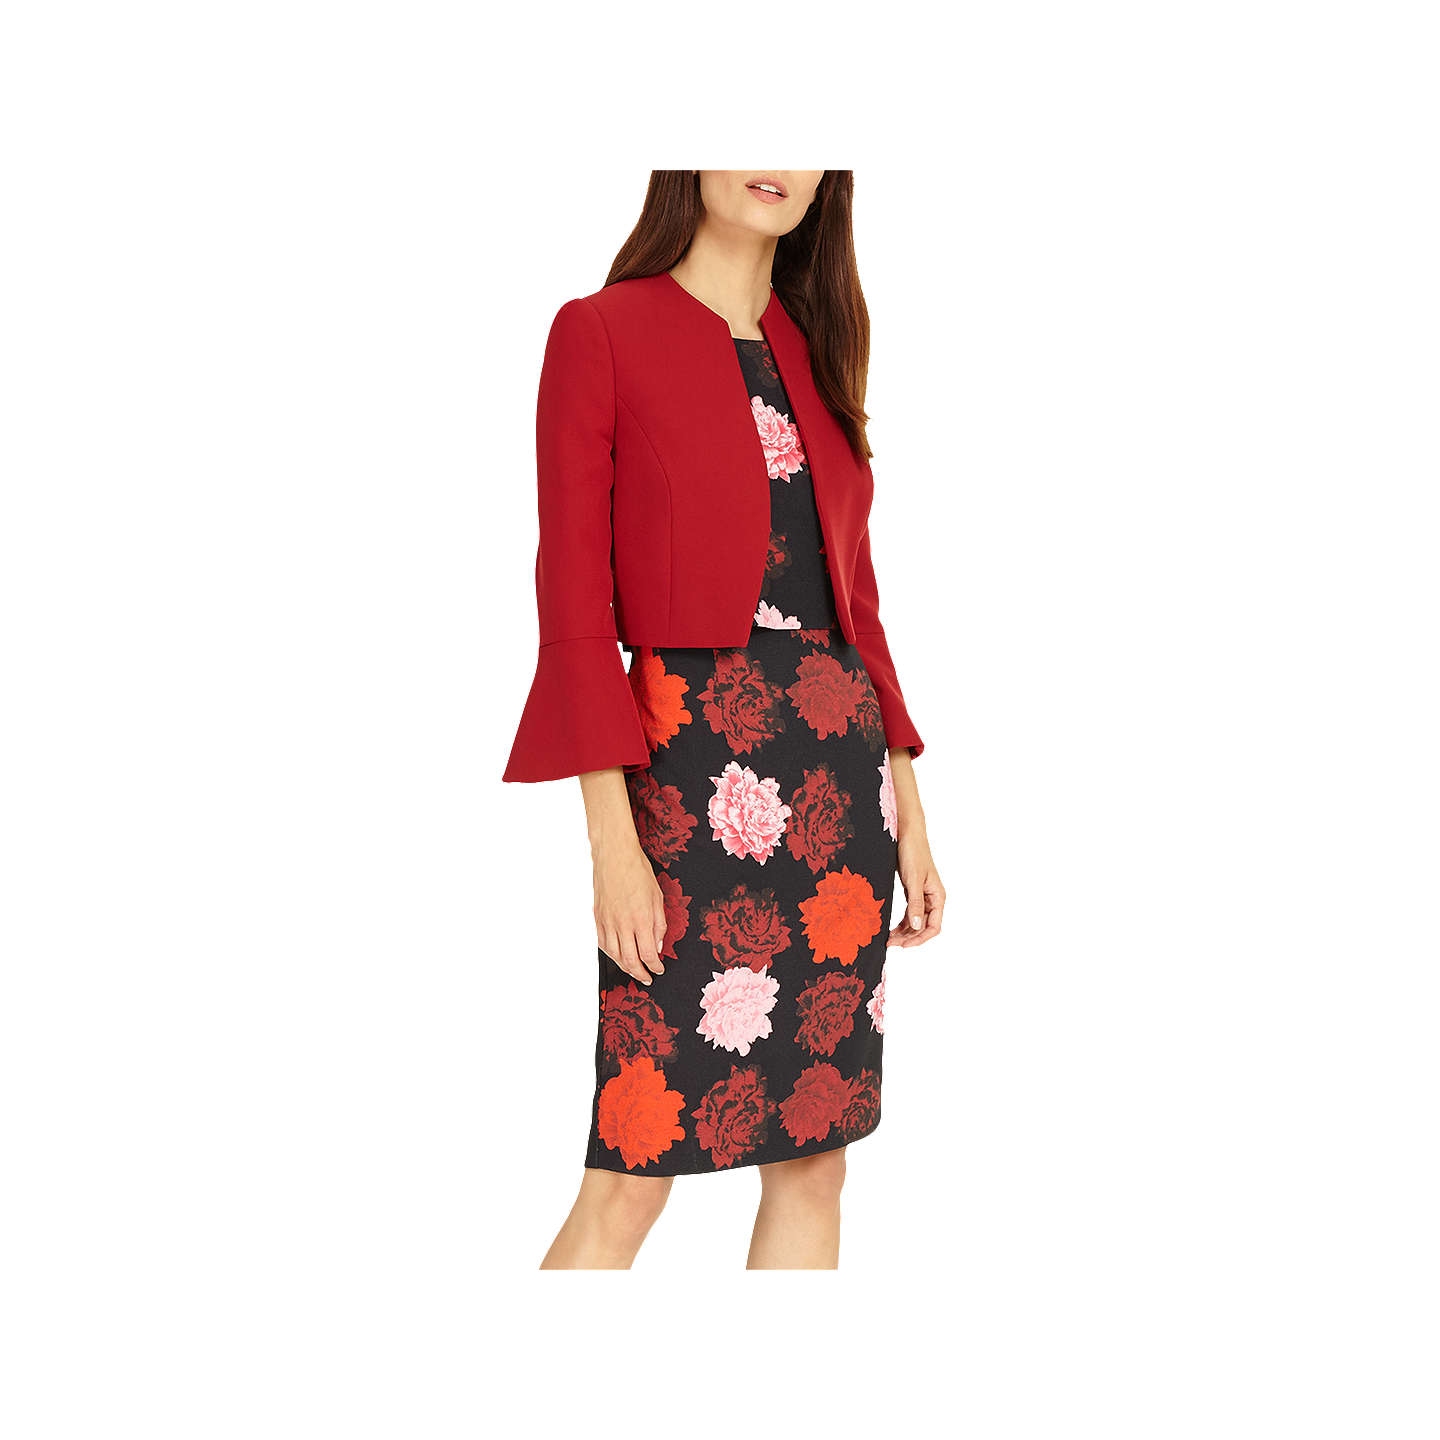 BuyPhase Eight Hanne Jacket, Fire, 6 Online at johnlewis.com